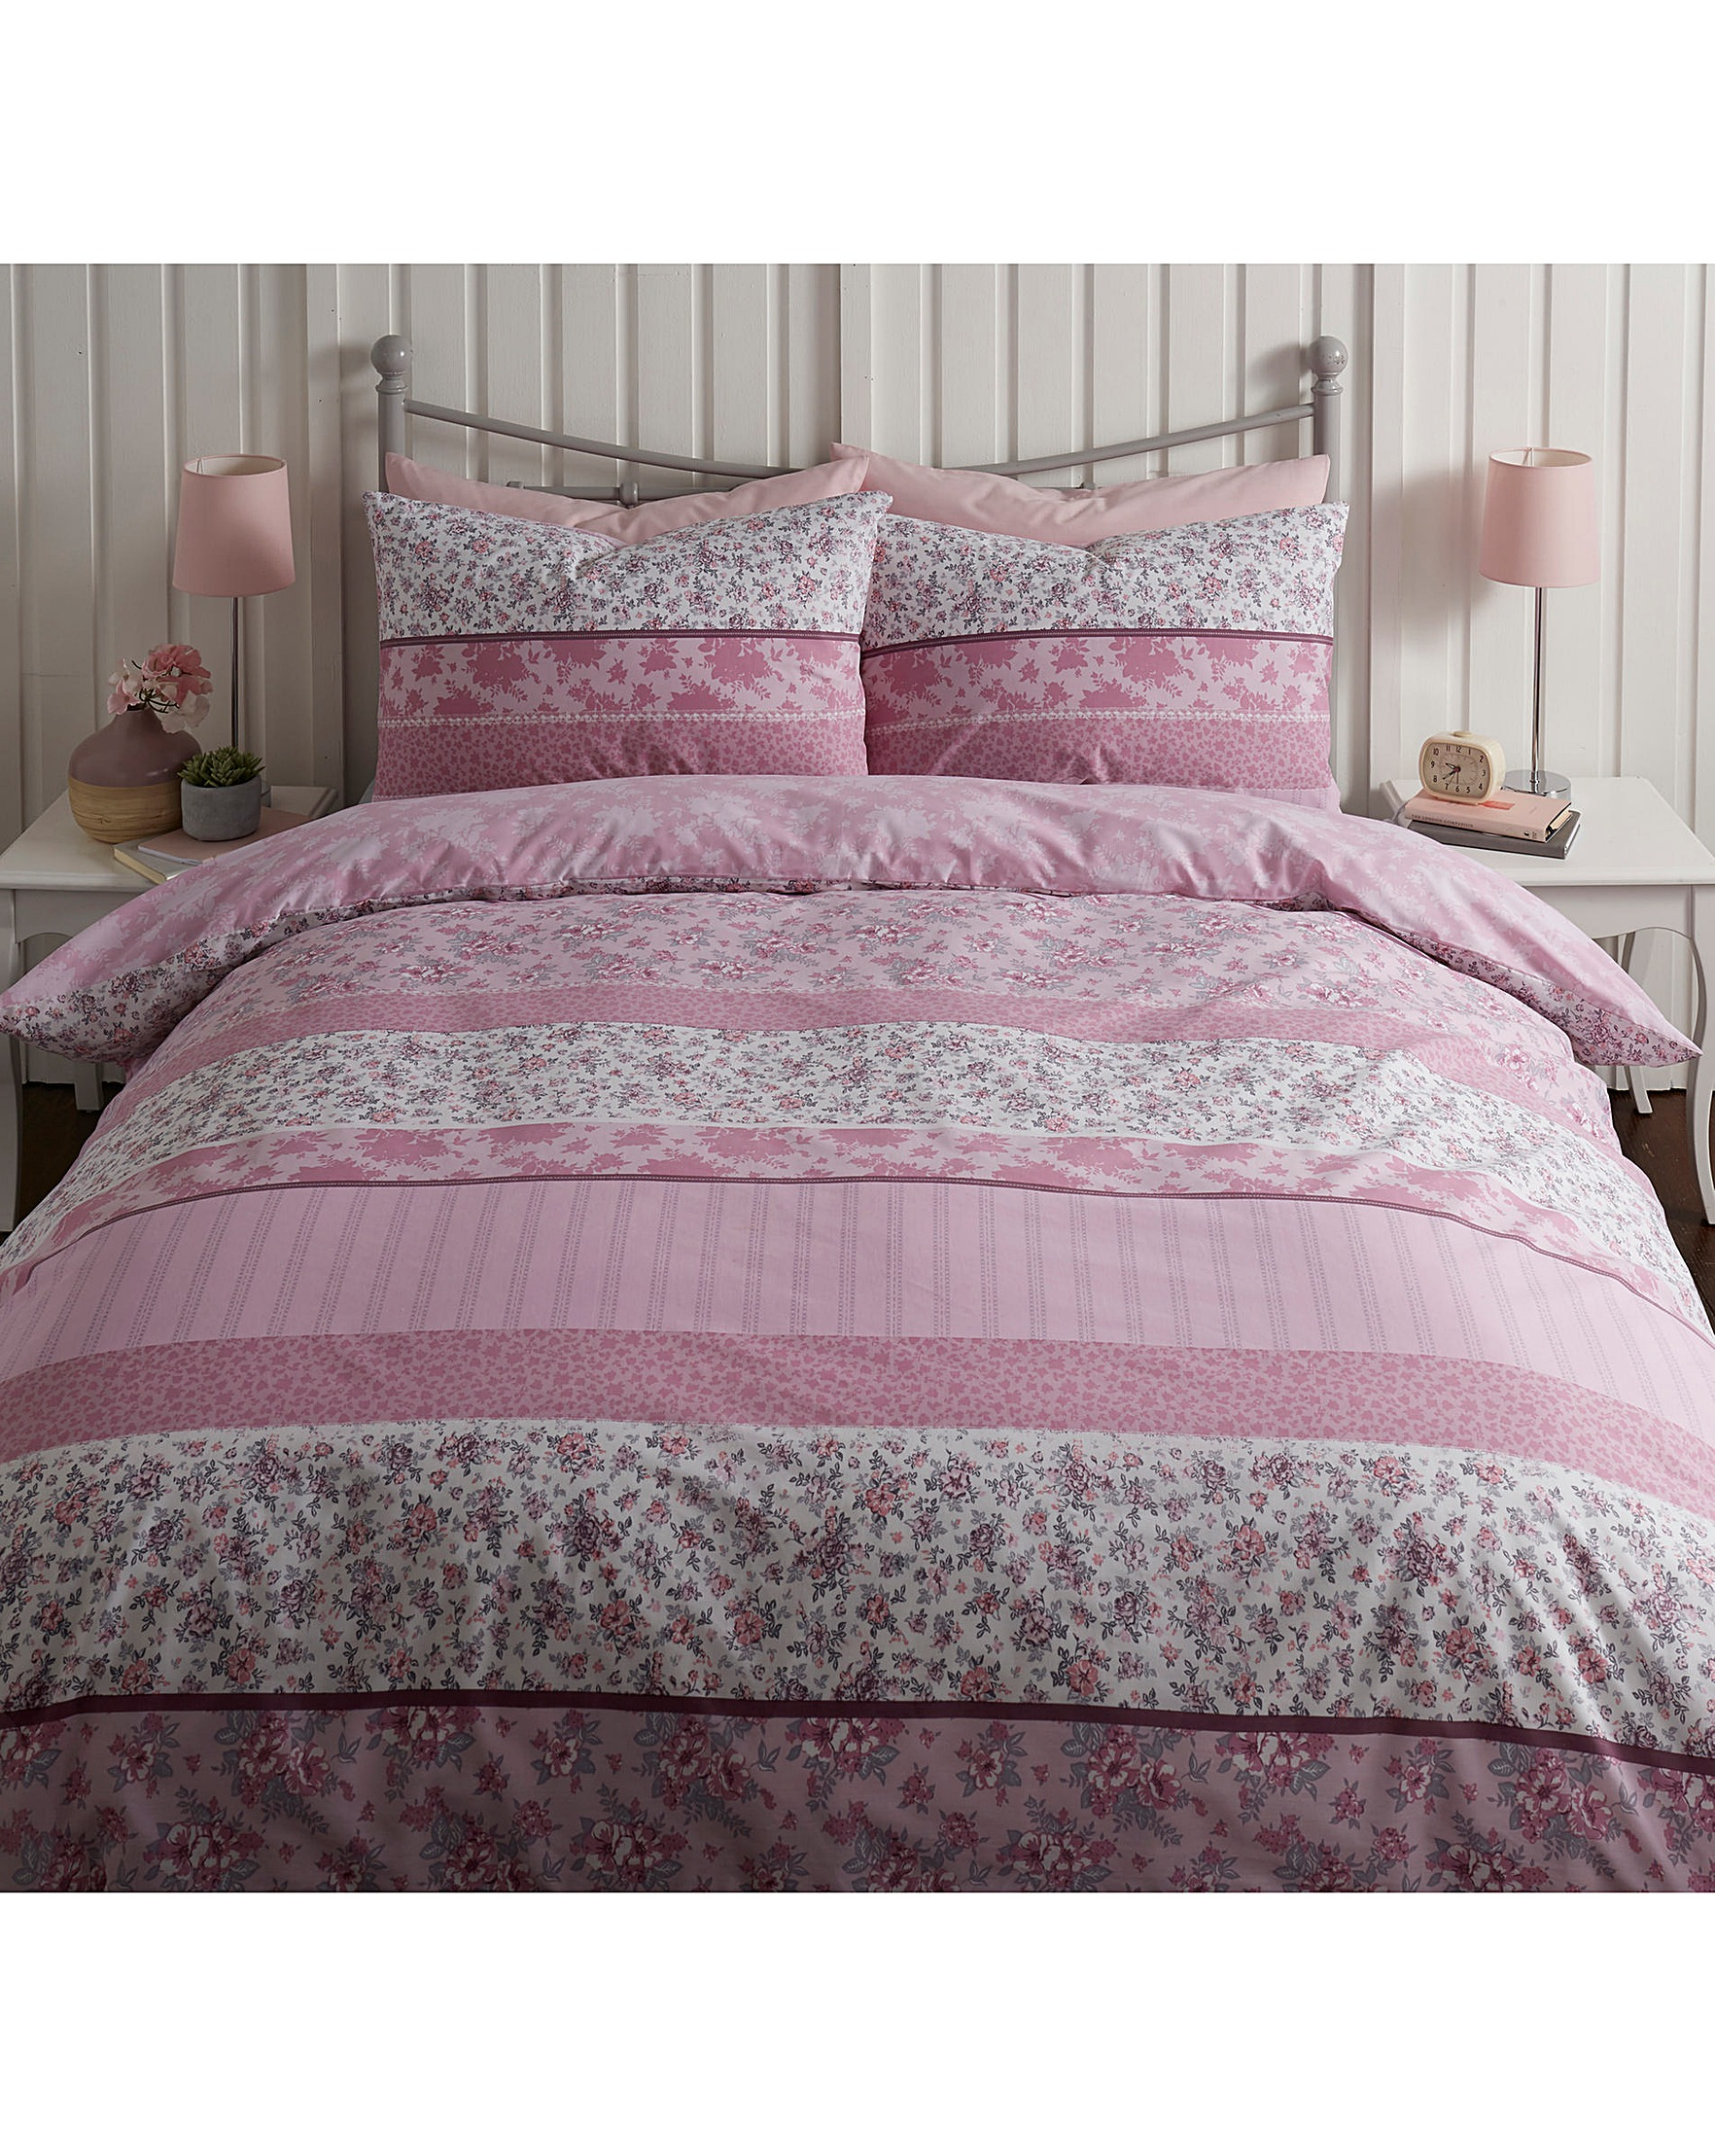 Zoe Printed Duvet Cover Set House Of Bath